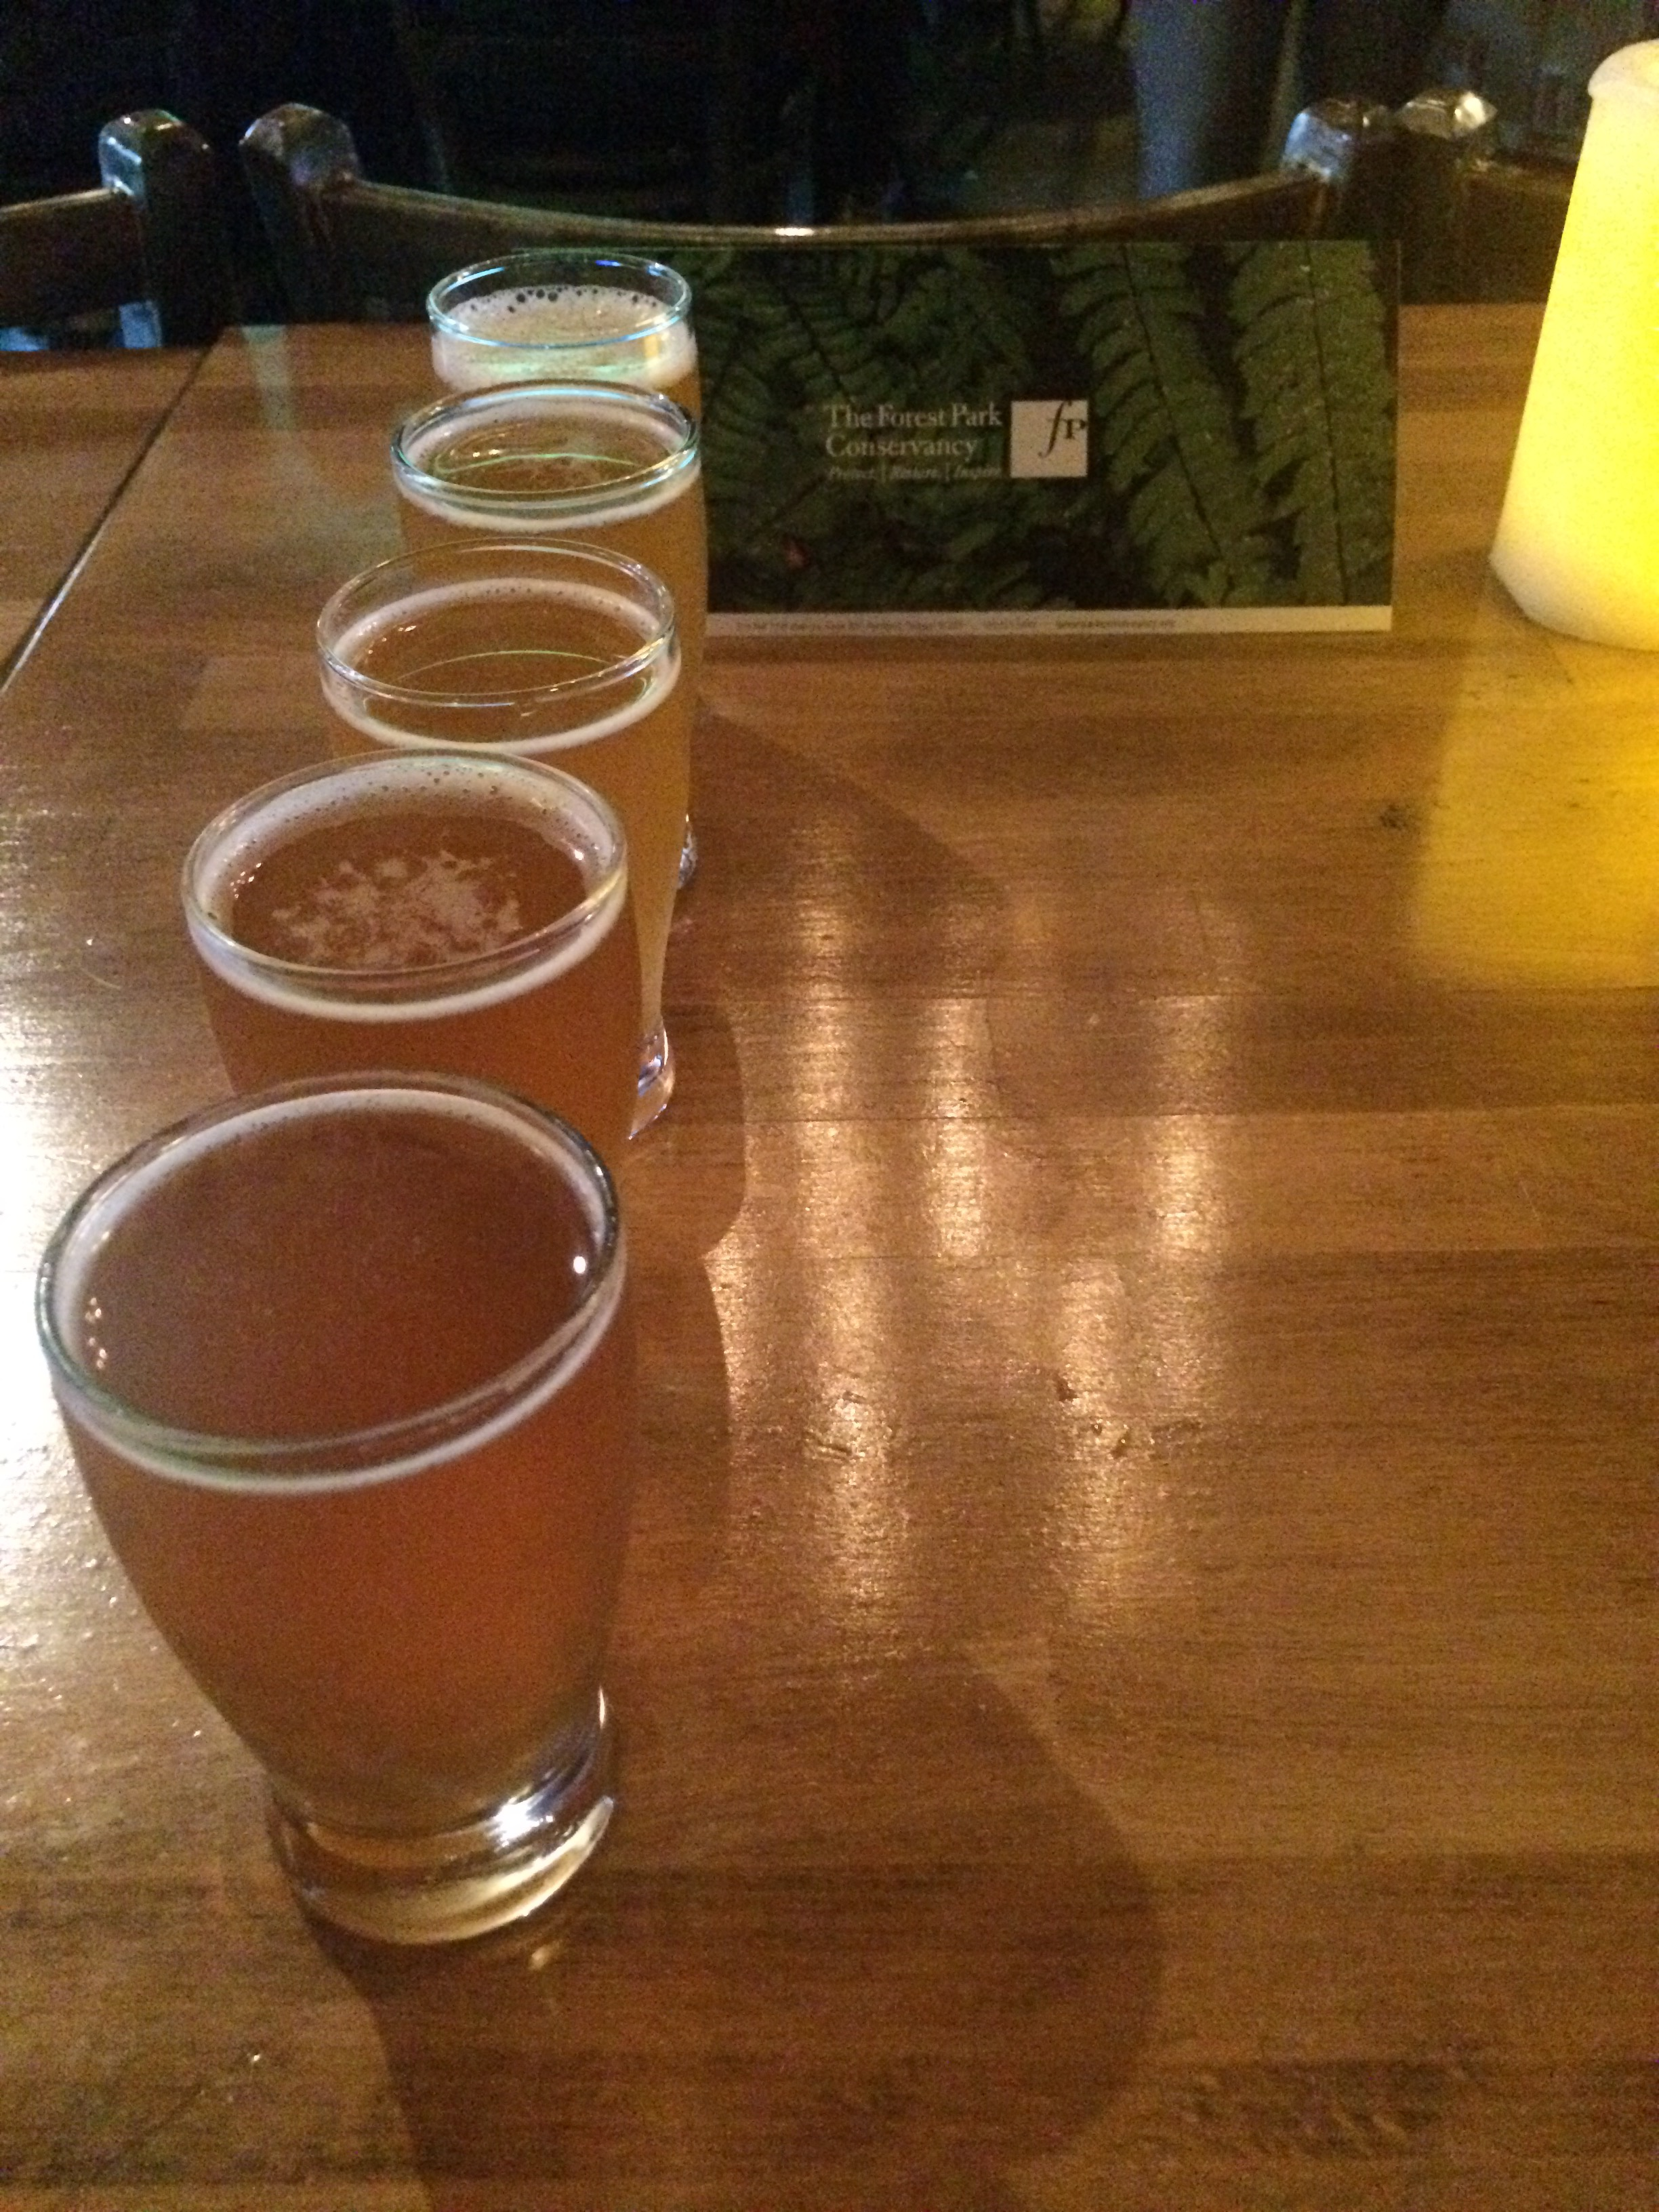 A flight of beers during the 2015 Beers Made By Walking fest at Bazi.